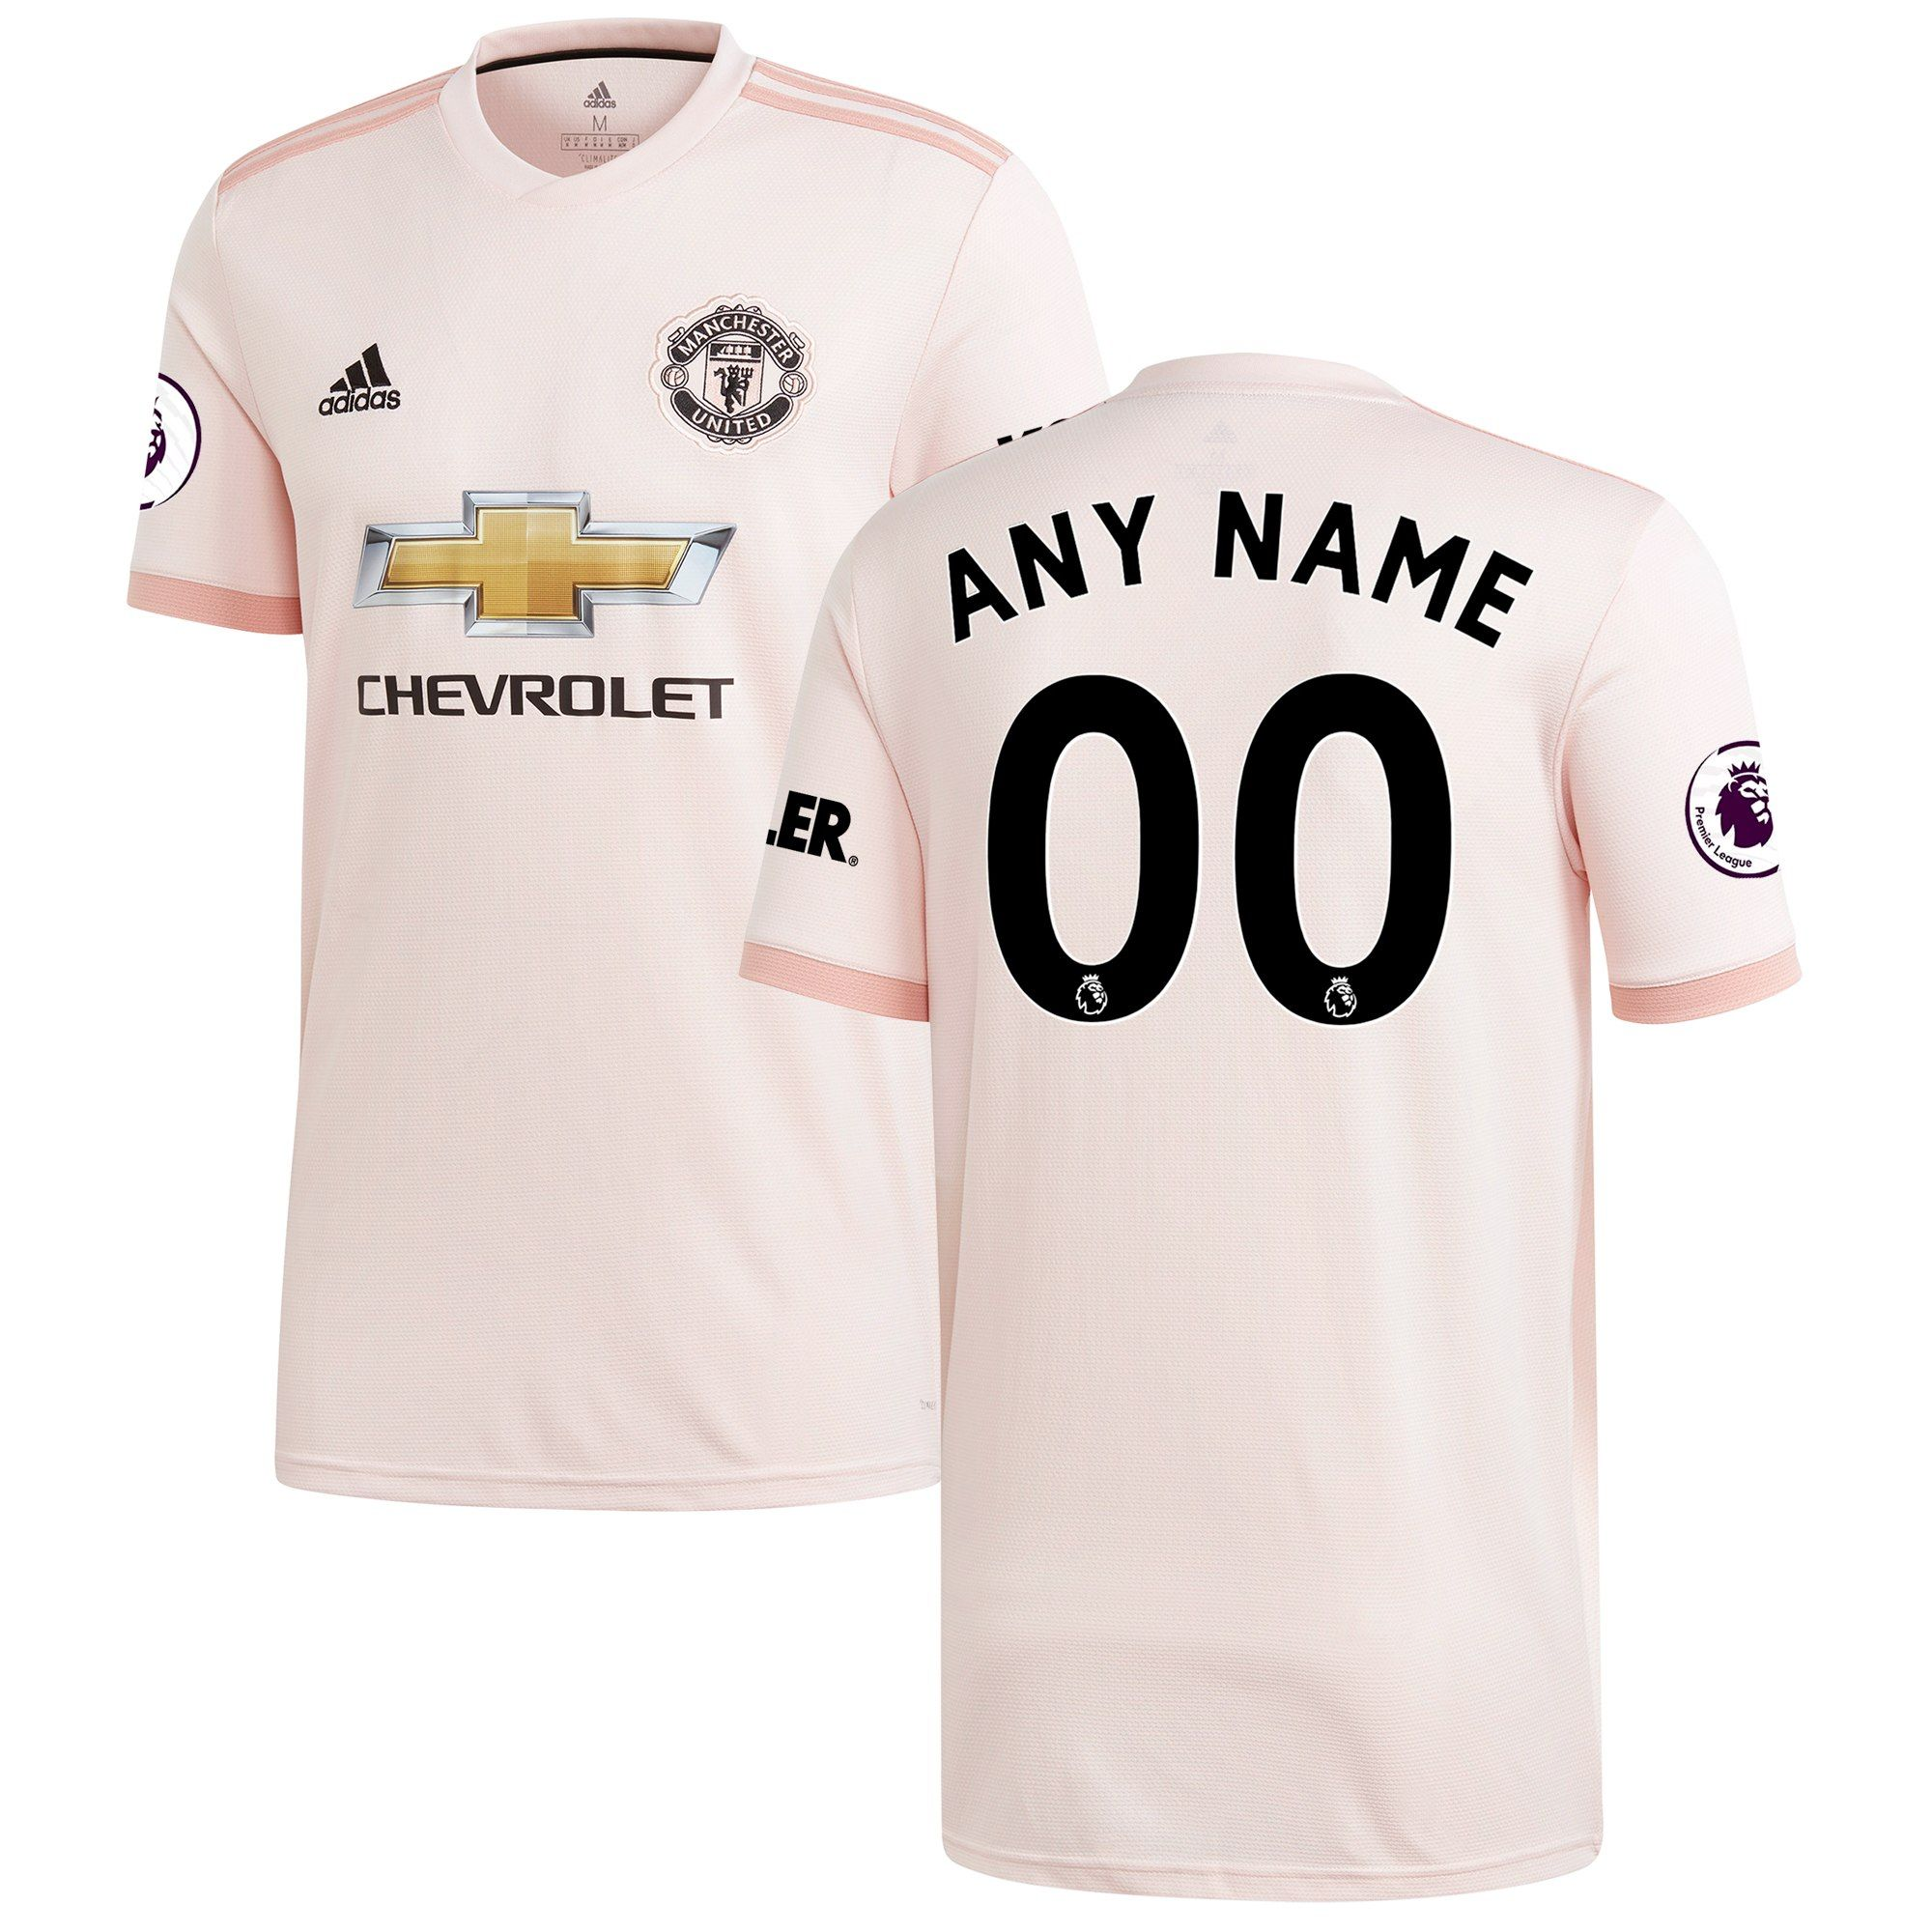 classic fit 8b48c 52092 2017-2018 Manchester United Away Jersey For Men (Personalized Name & Number)